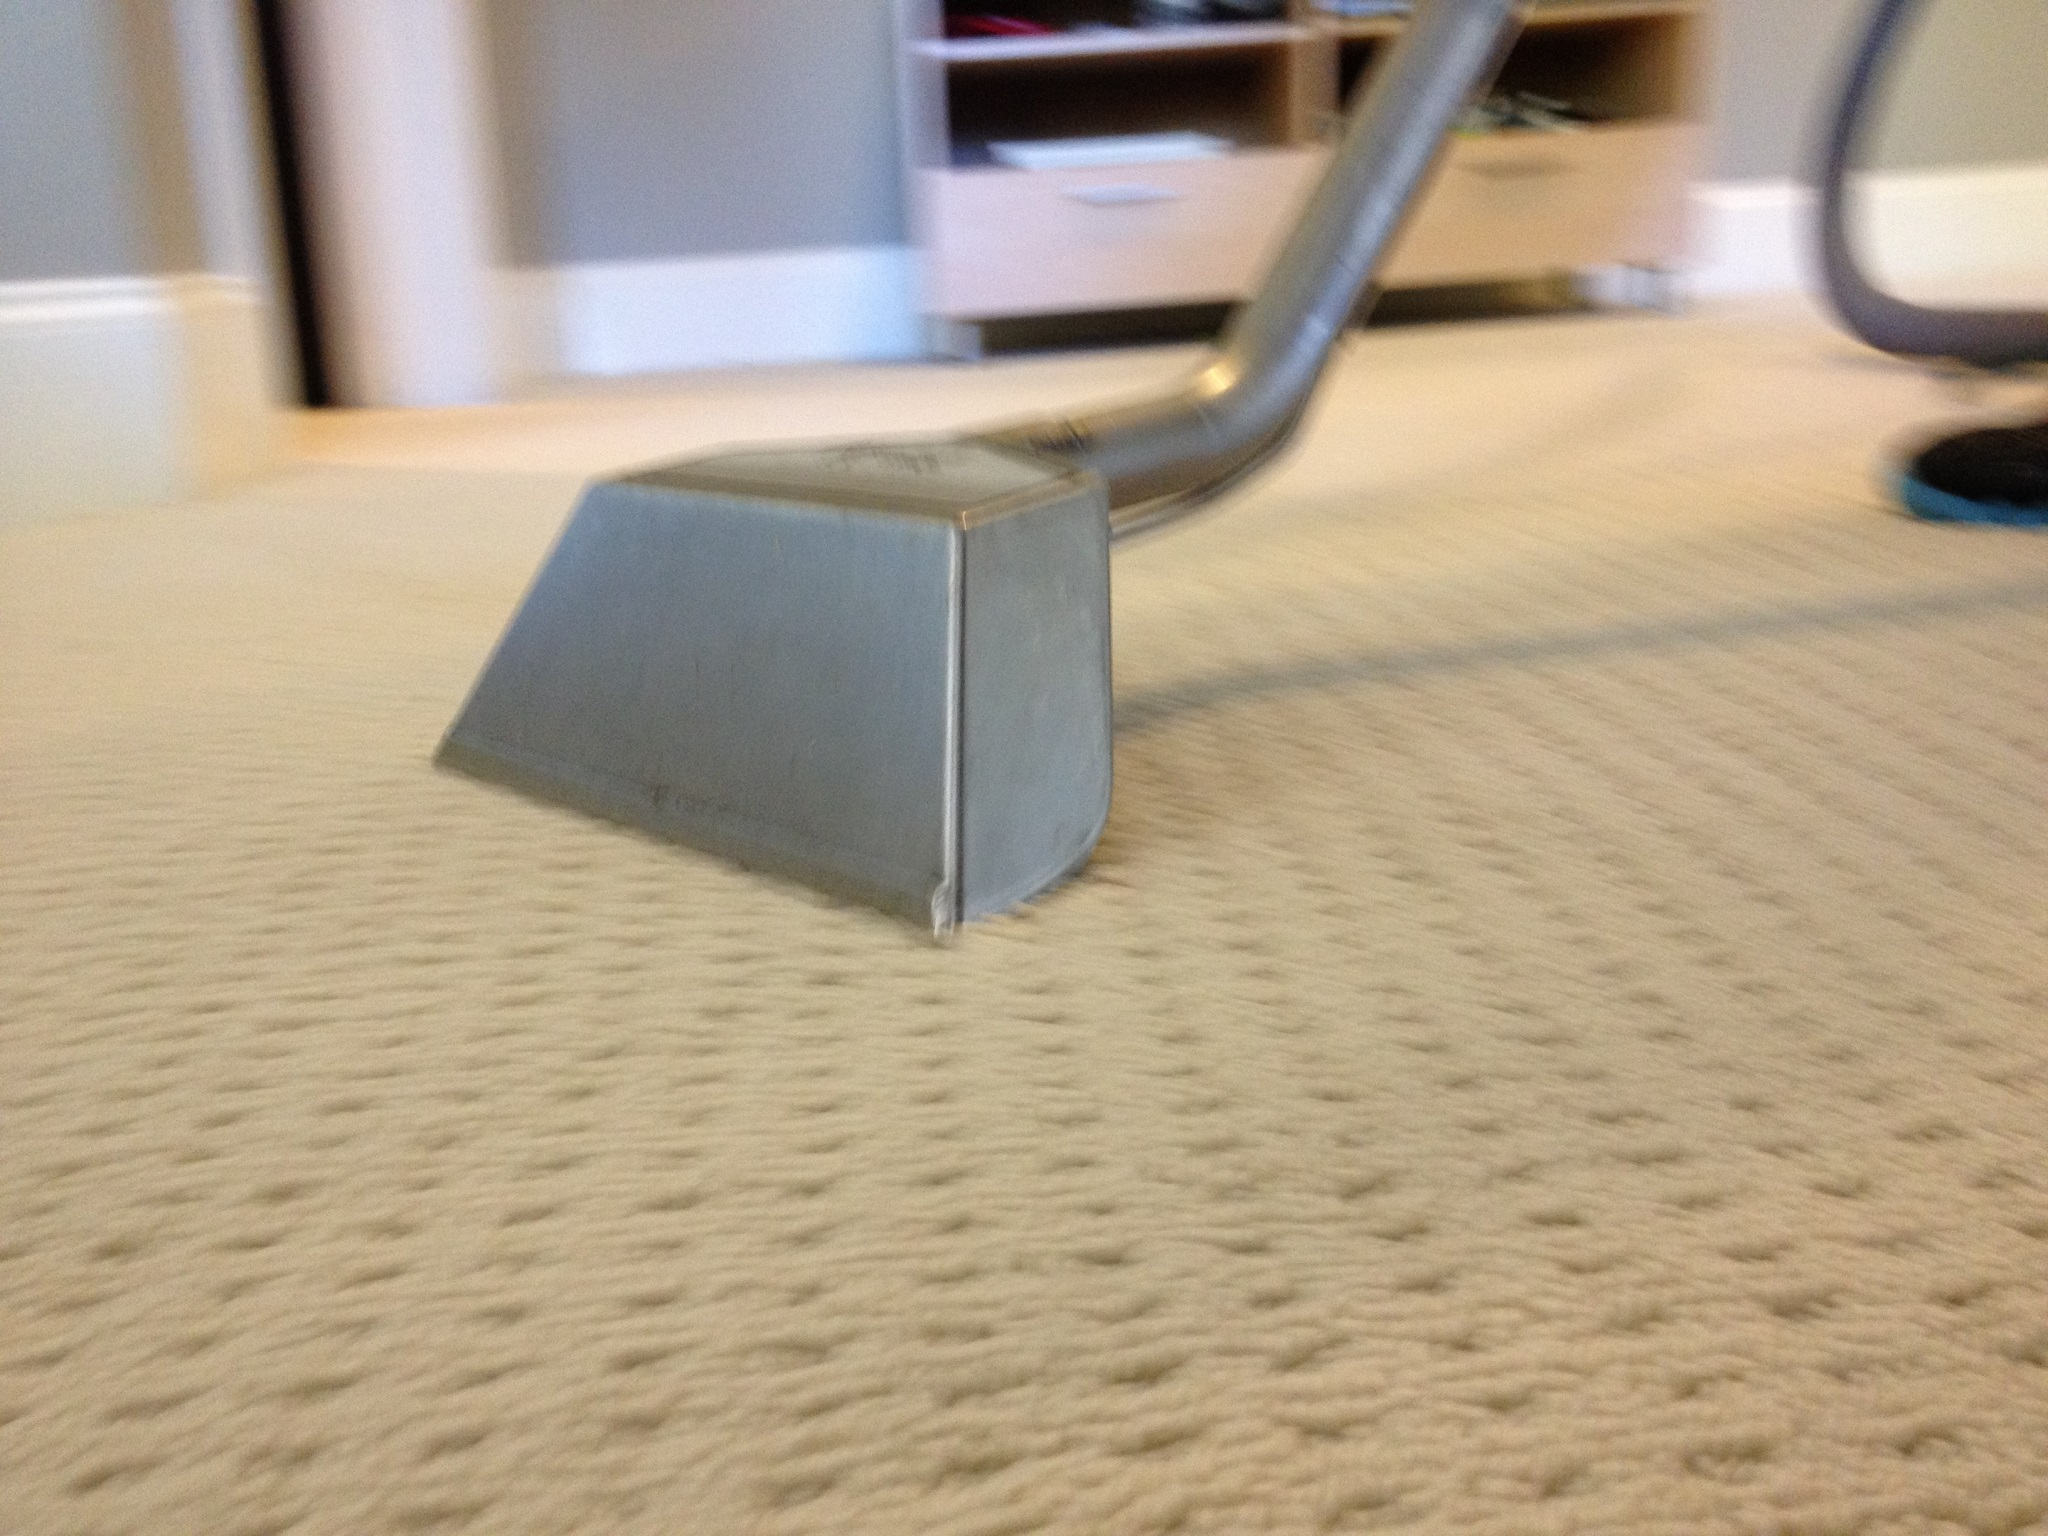 Easy Carpet Cleaning With Vacuum Cleaner (Image 7 of 8)